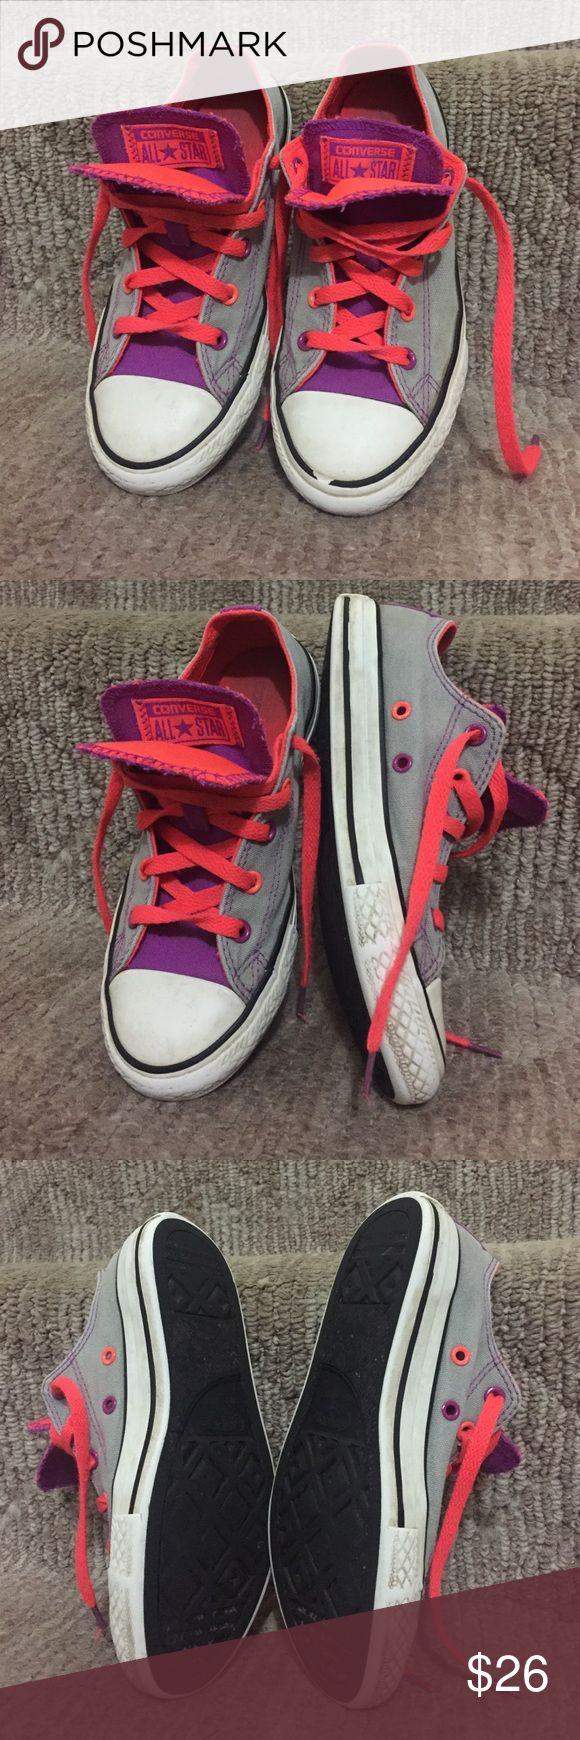 Girls converse sneakers Girls Converse shoes size 2, great combination of colors, purple, orange and gray.  Great condition Converse Shoes Sneakers